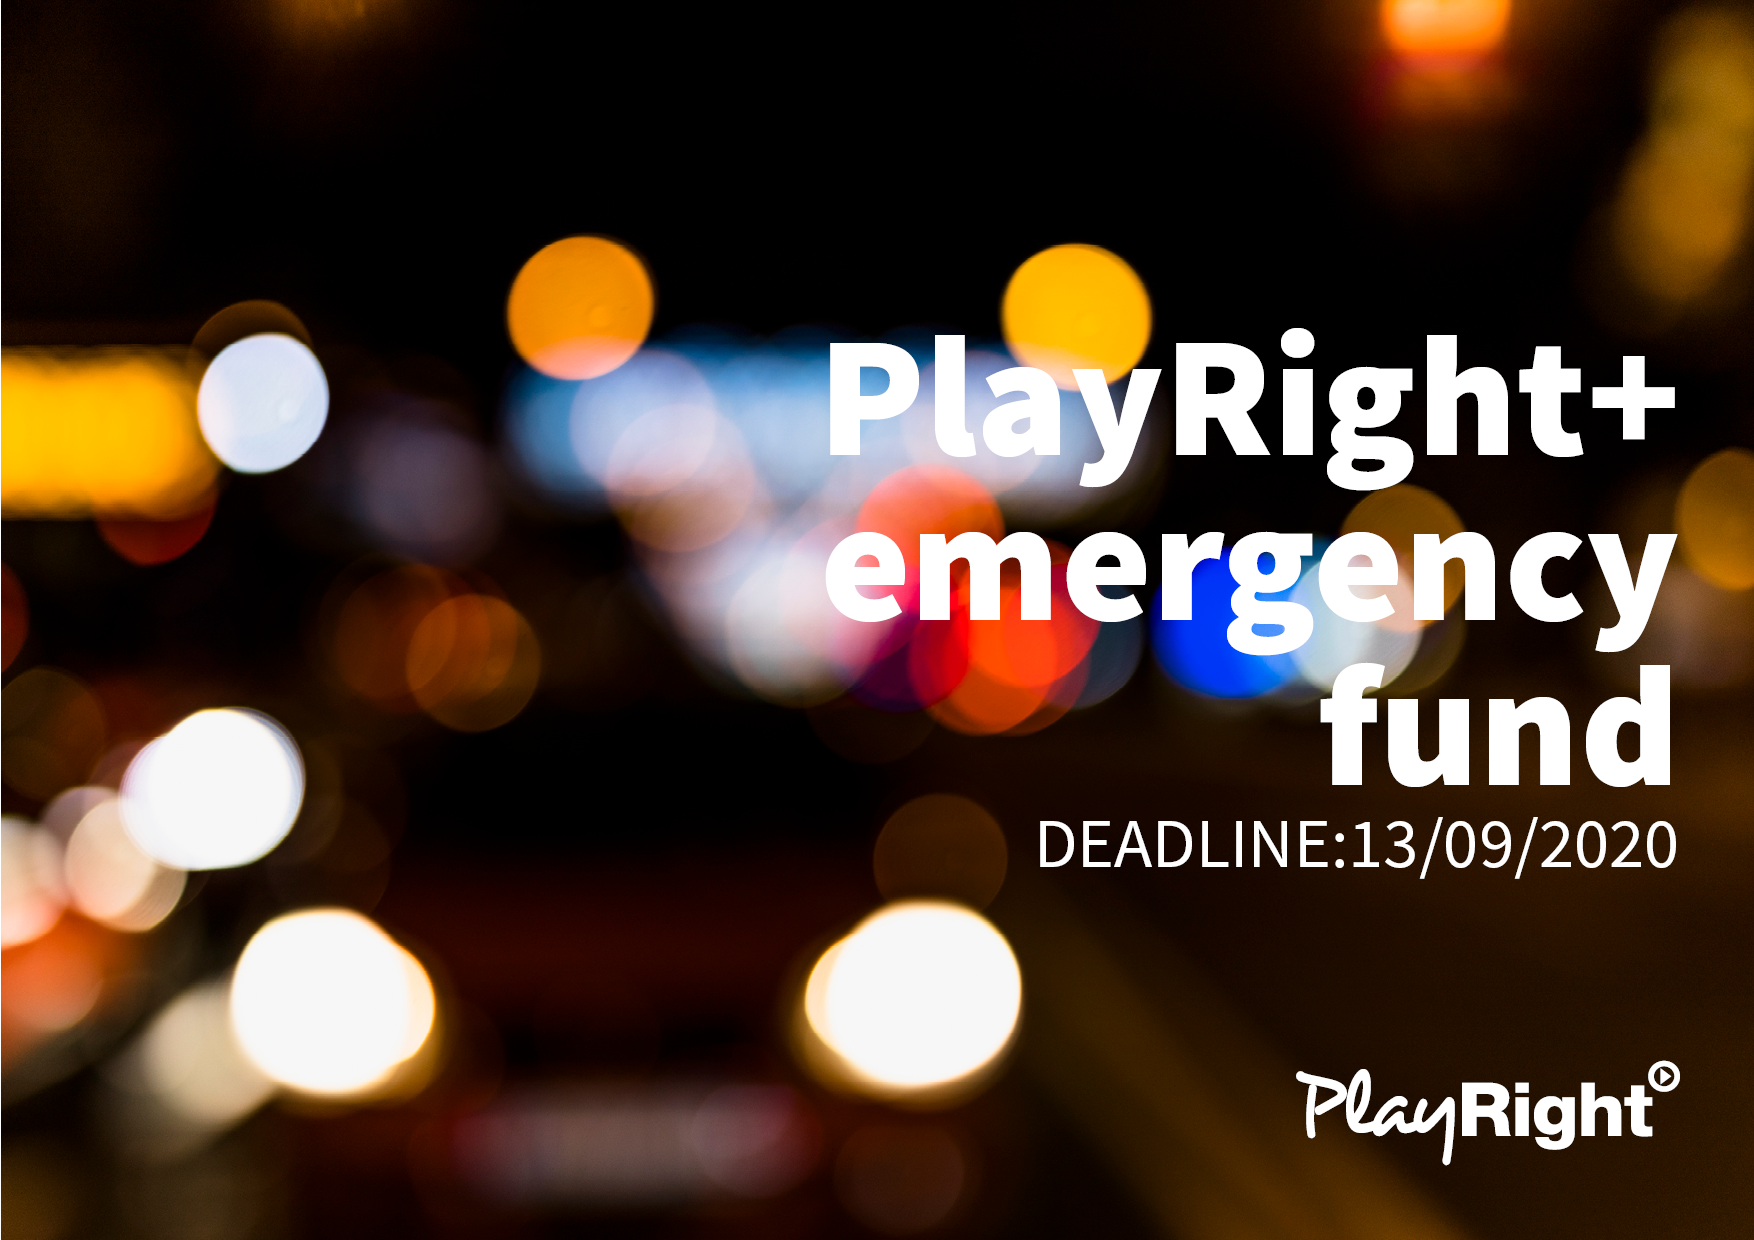 REMINDER: Benefit from the PlayRight+ emergency fund by submitting your request now!